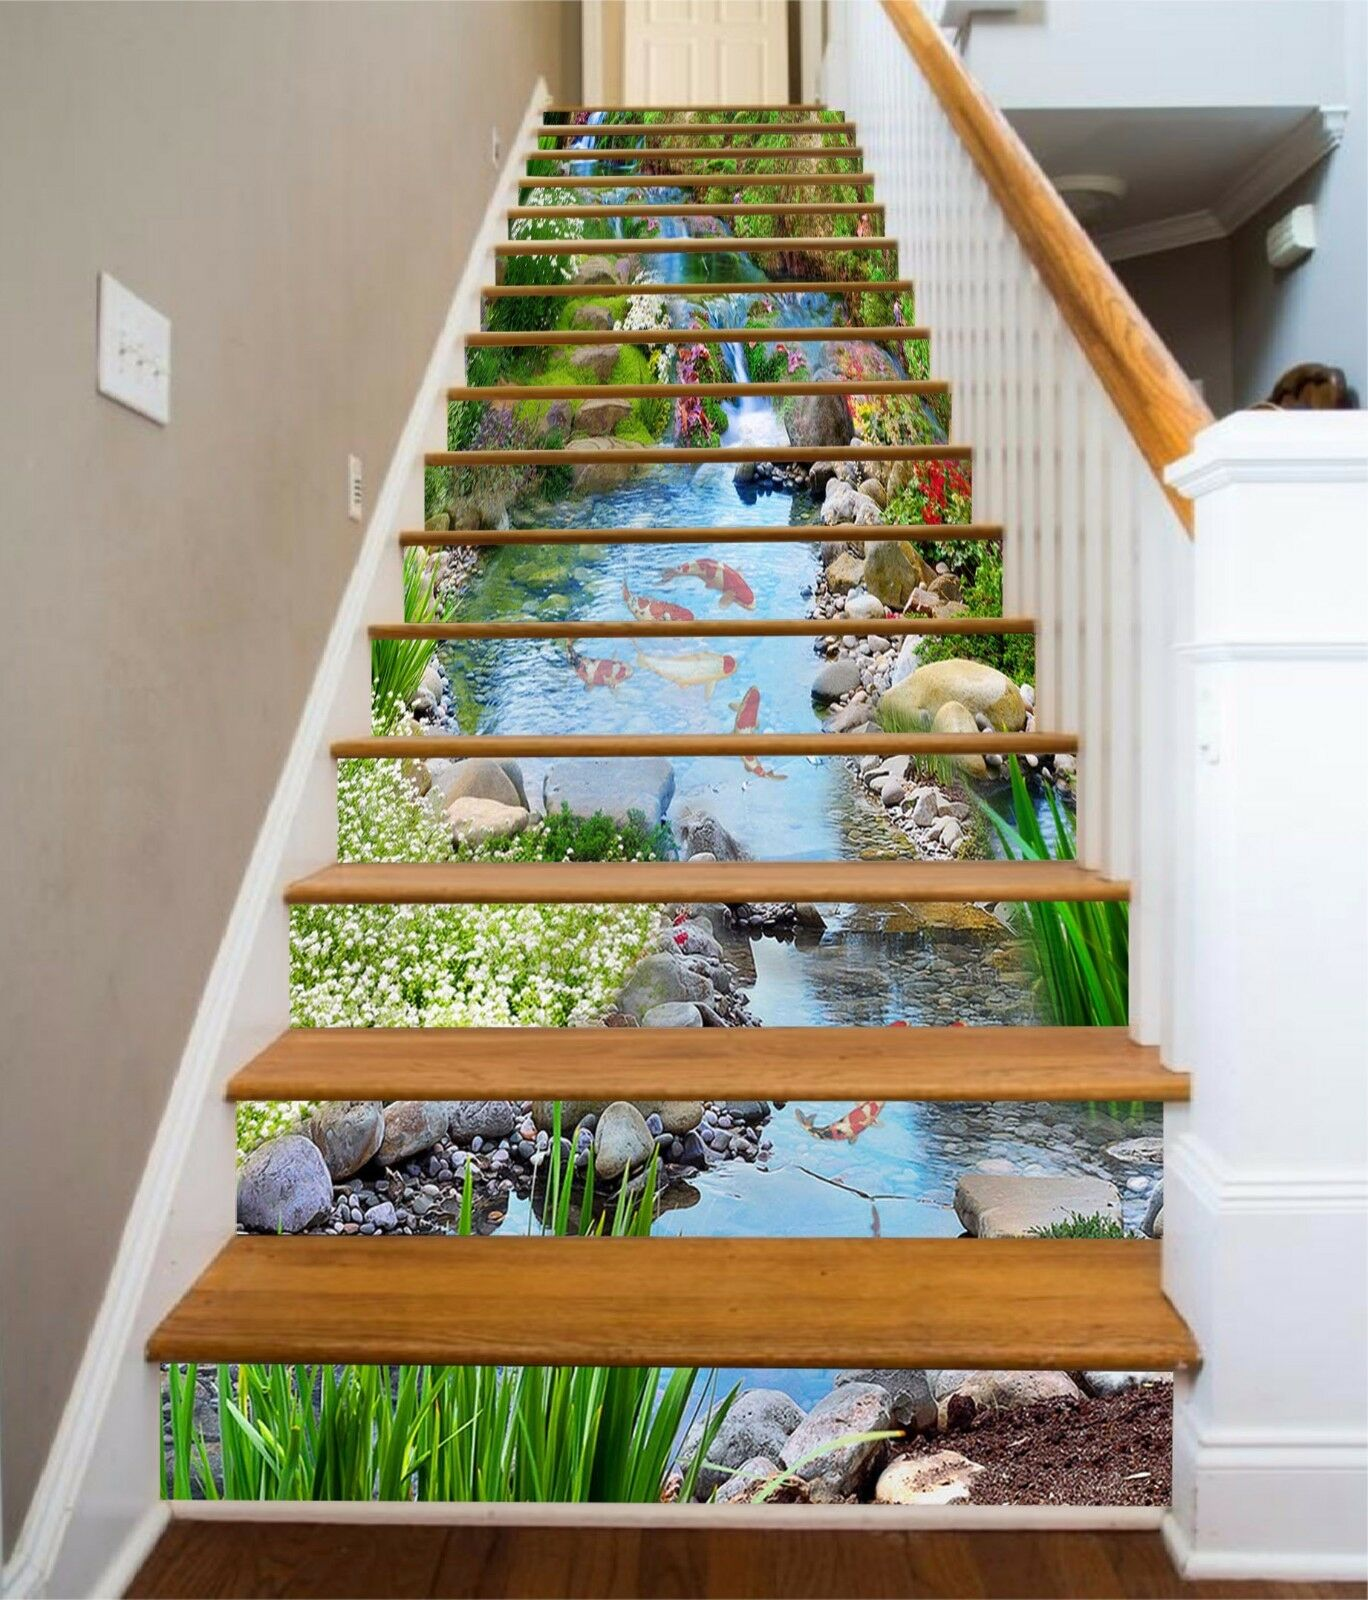 3D Lawn creek 7 Stair Risers Decoration Photo Mural Vinyl Decal Wallpaper UK